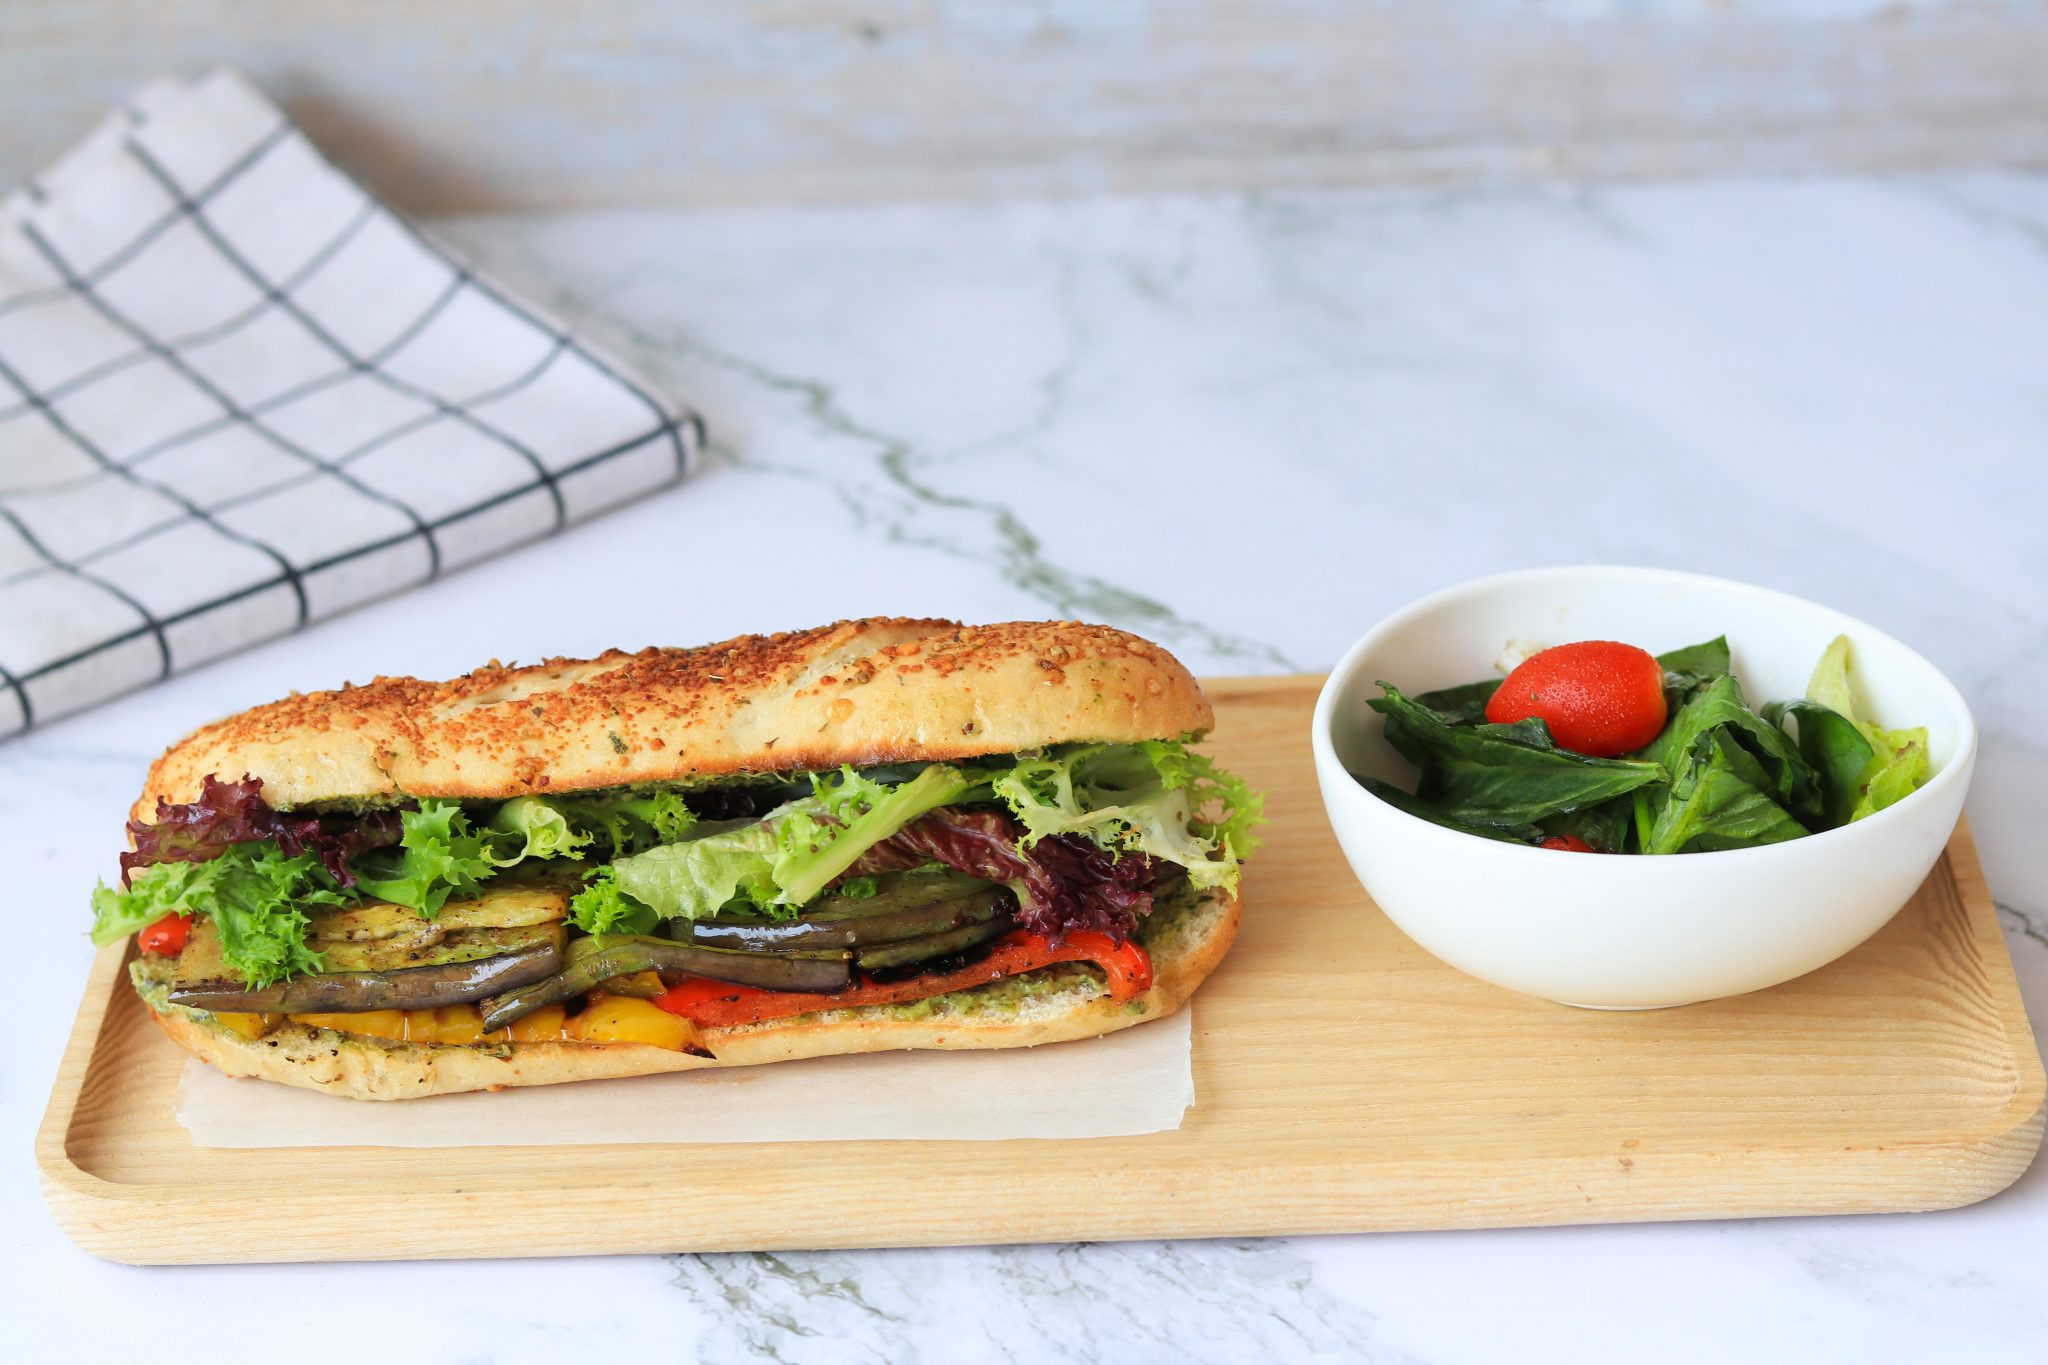 Roasted Veggie Pesto Sandwich